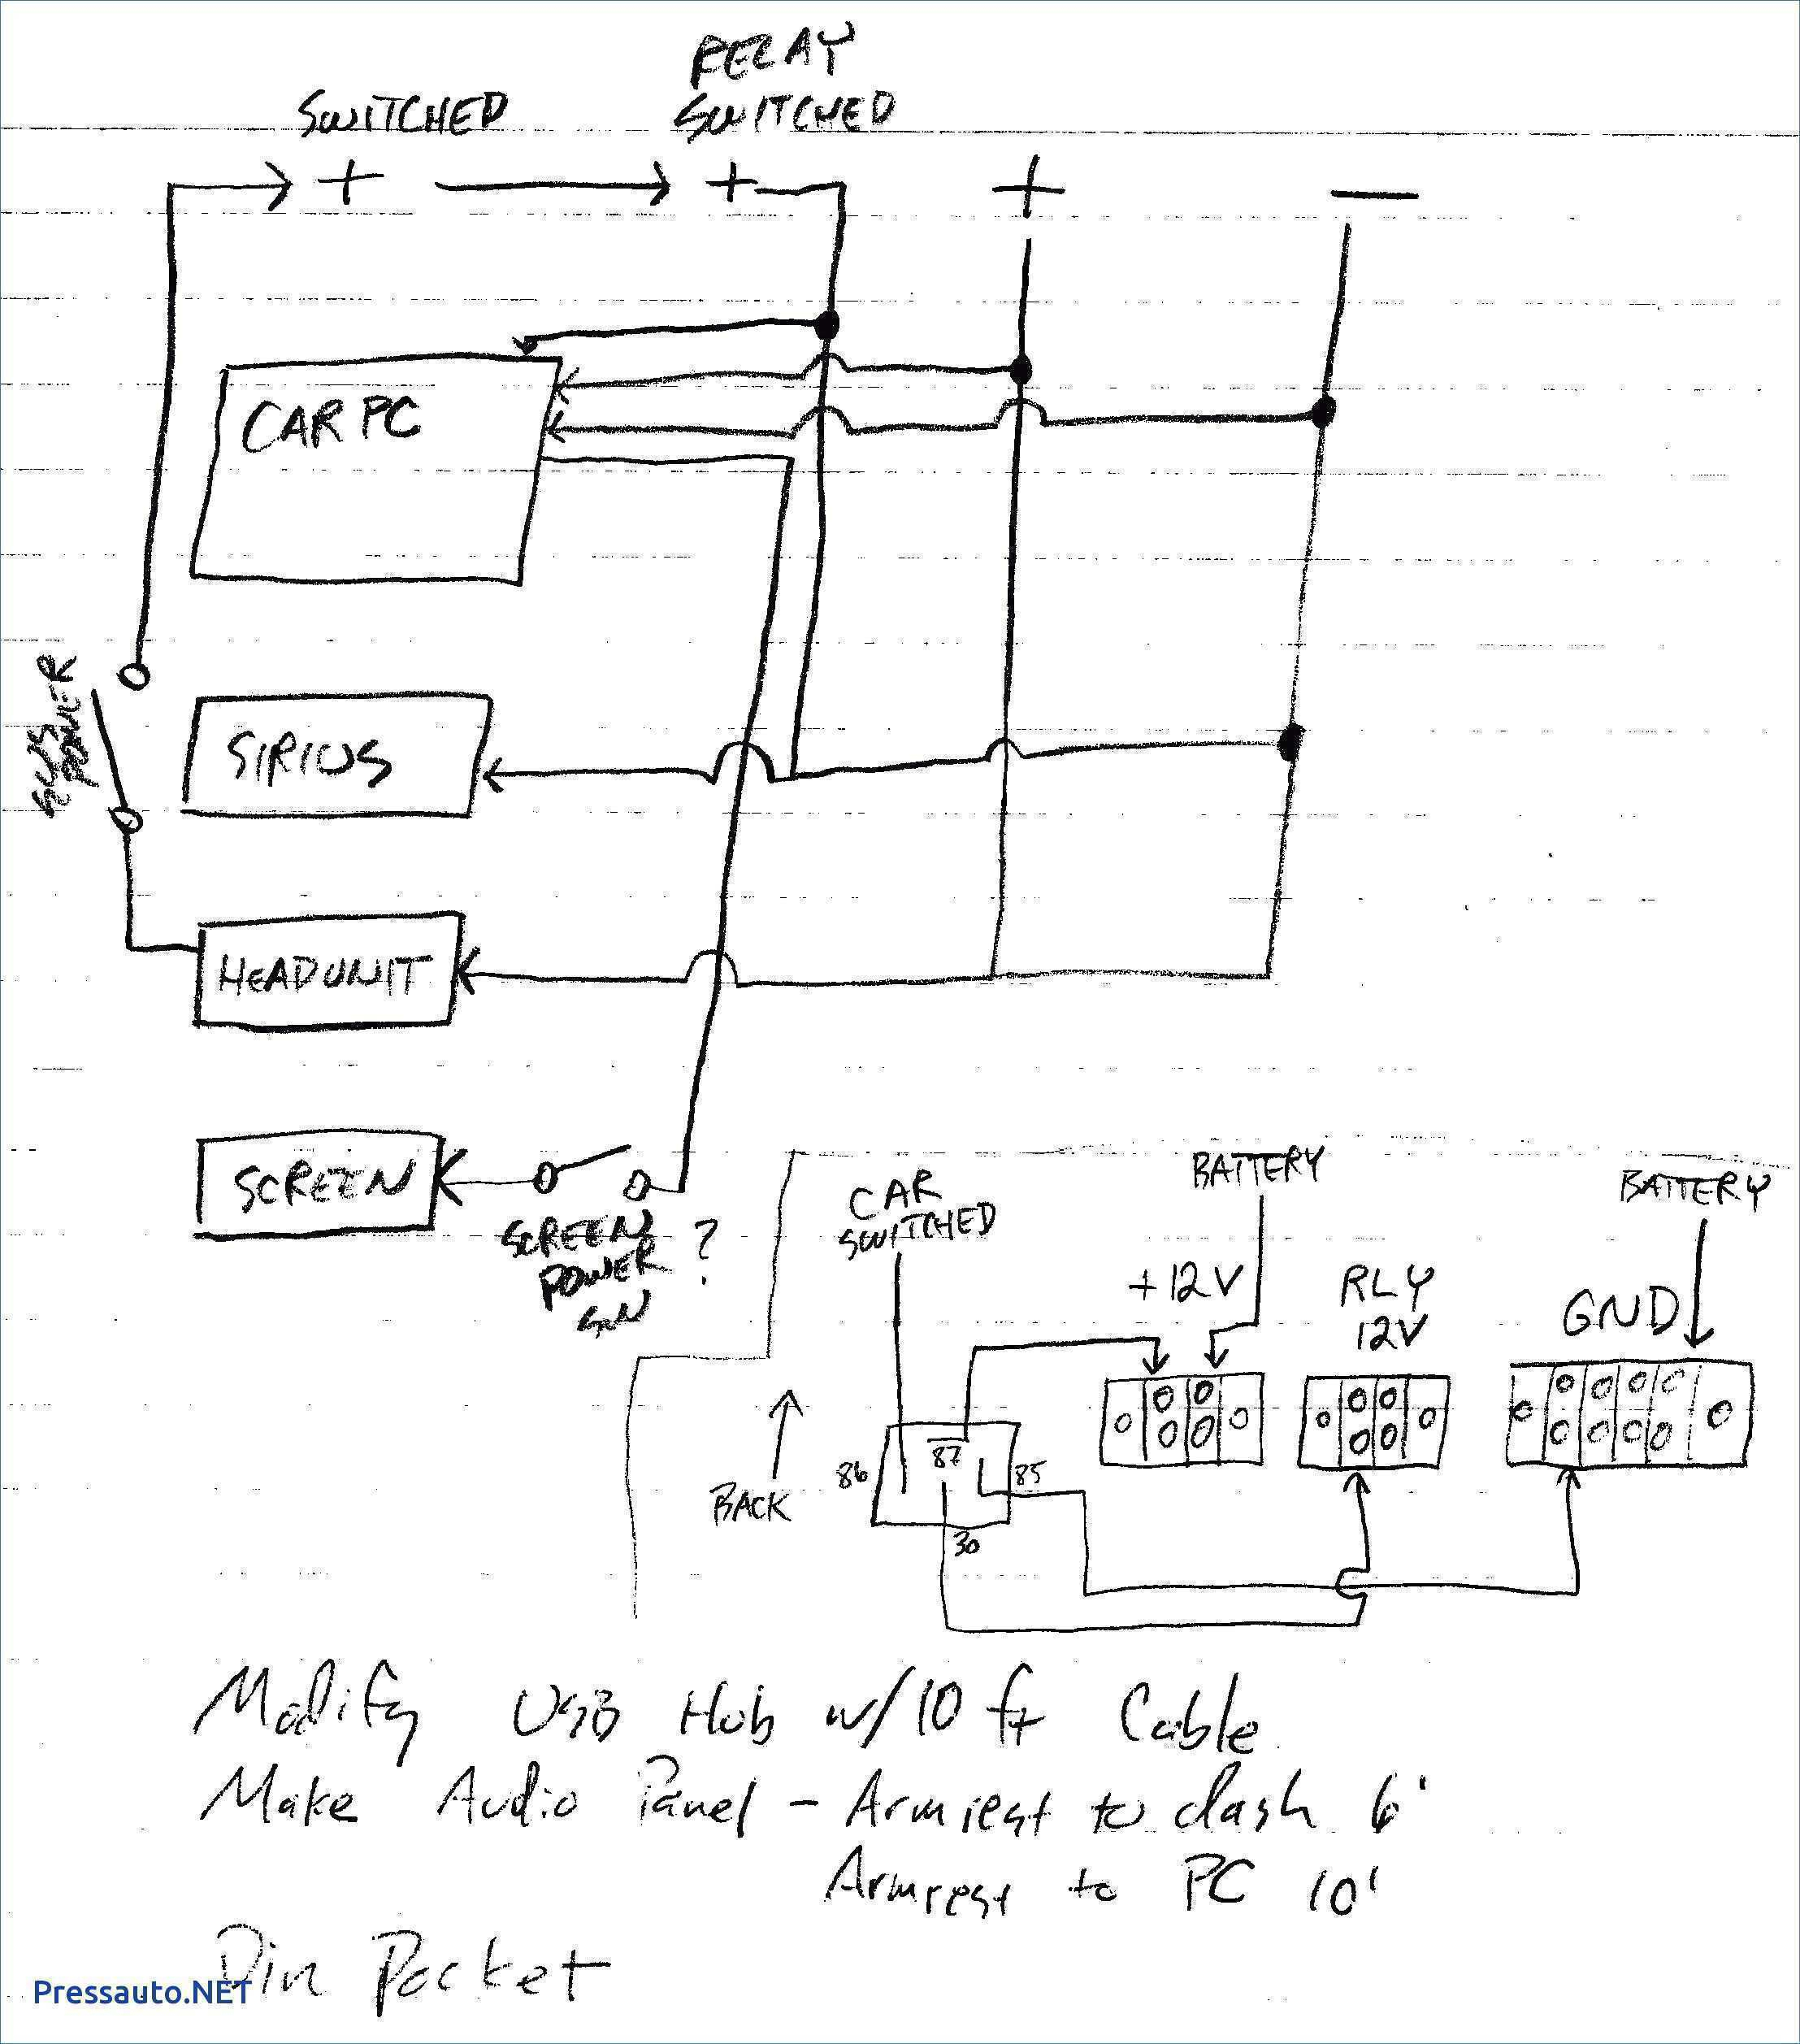 Meyer Plow Controller Wiring Diagram | Manual E-Books - Meyer E47 Wiring Diagram